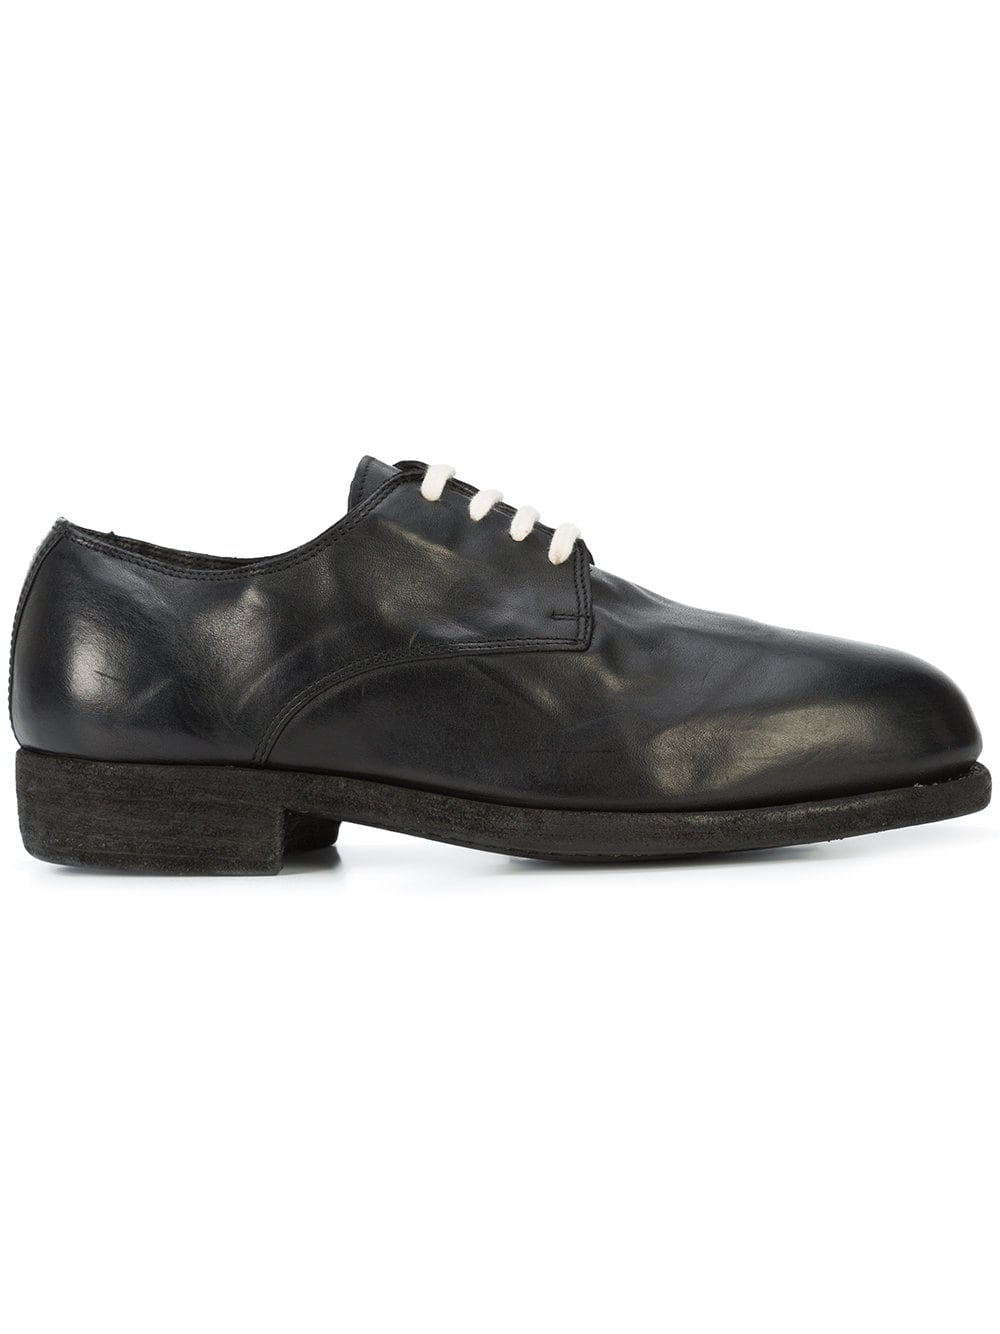 GUIDI WOMEN SOFT HORSE LEATHER 112 BALL DERBY